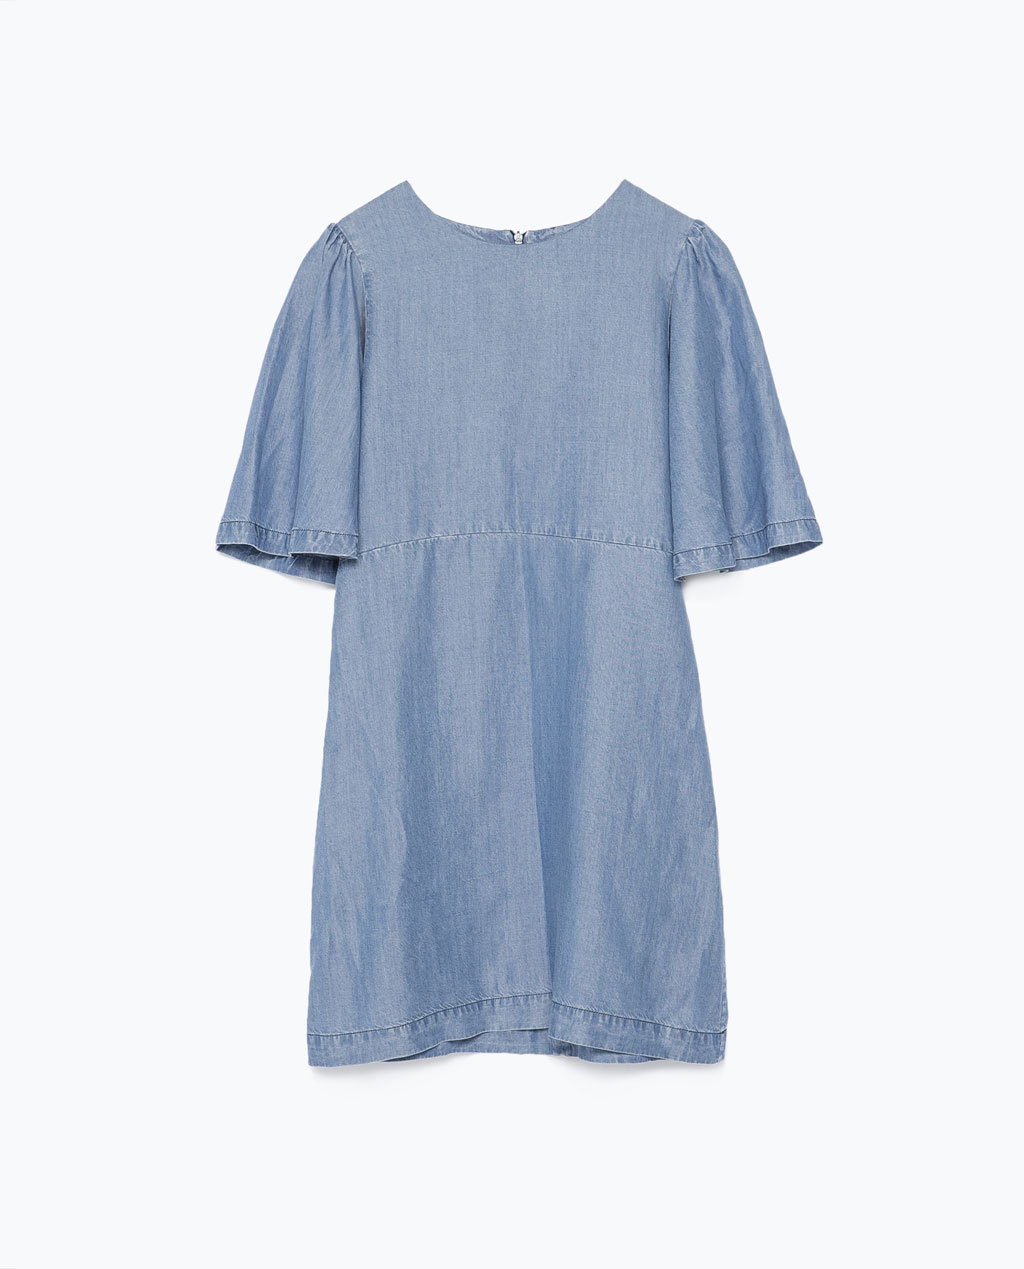 Loose Cut Dress - style: shift; length: mini; sleeve style: angel/waterfall; pattern: plain; predominant colour: denim; occasions: casual; fit: soft a-line; fibres: cotton - mix; neckline: crew; sleeve length: short sleeve; texture group: denim; pattern type: fabric; trends: alternative denim; season: s/s 2015; wardrobe: basic